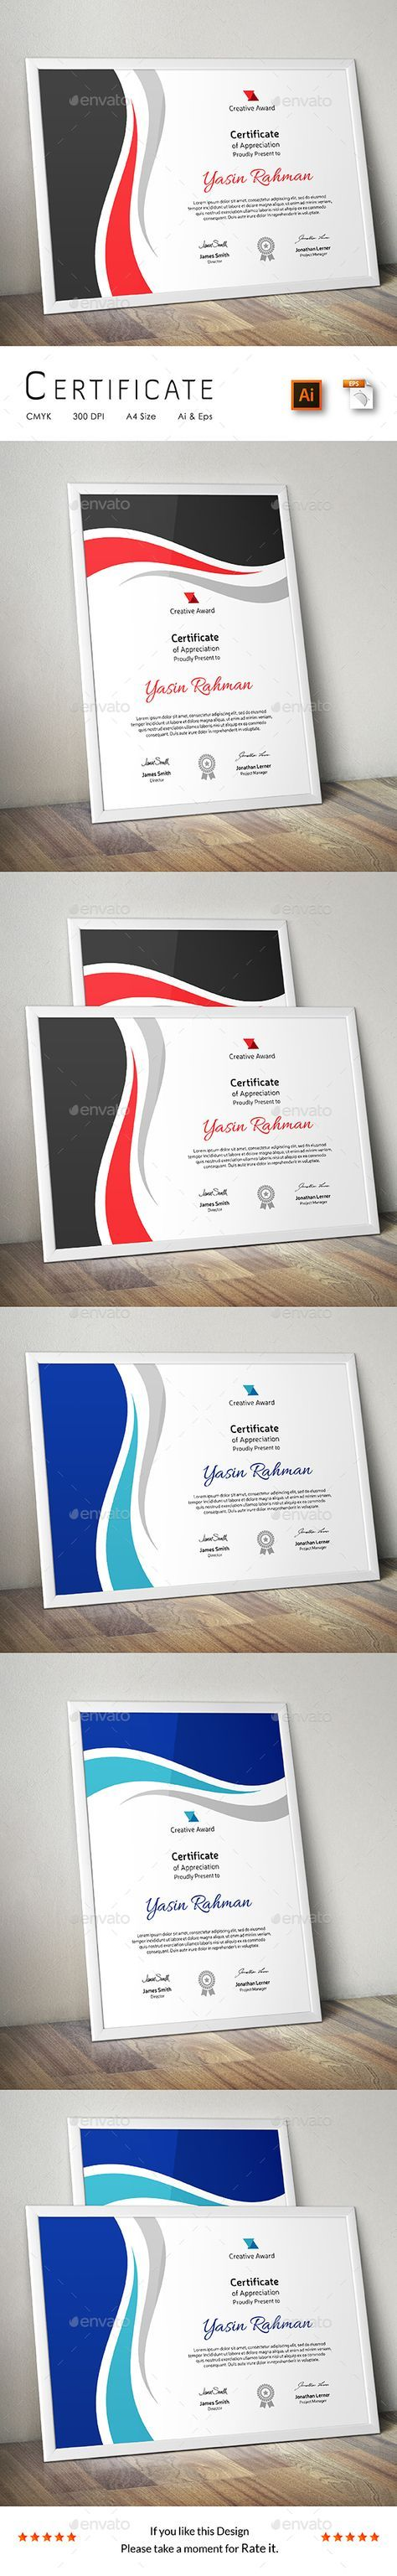 #Certificate - Certificates #Stationery Download here: https://graphicriver.net/item/certificate/15221473?ref=alena994